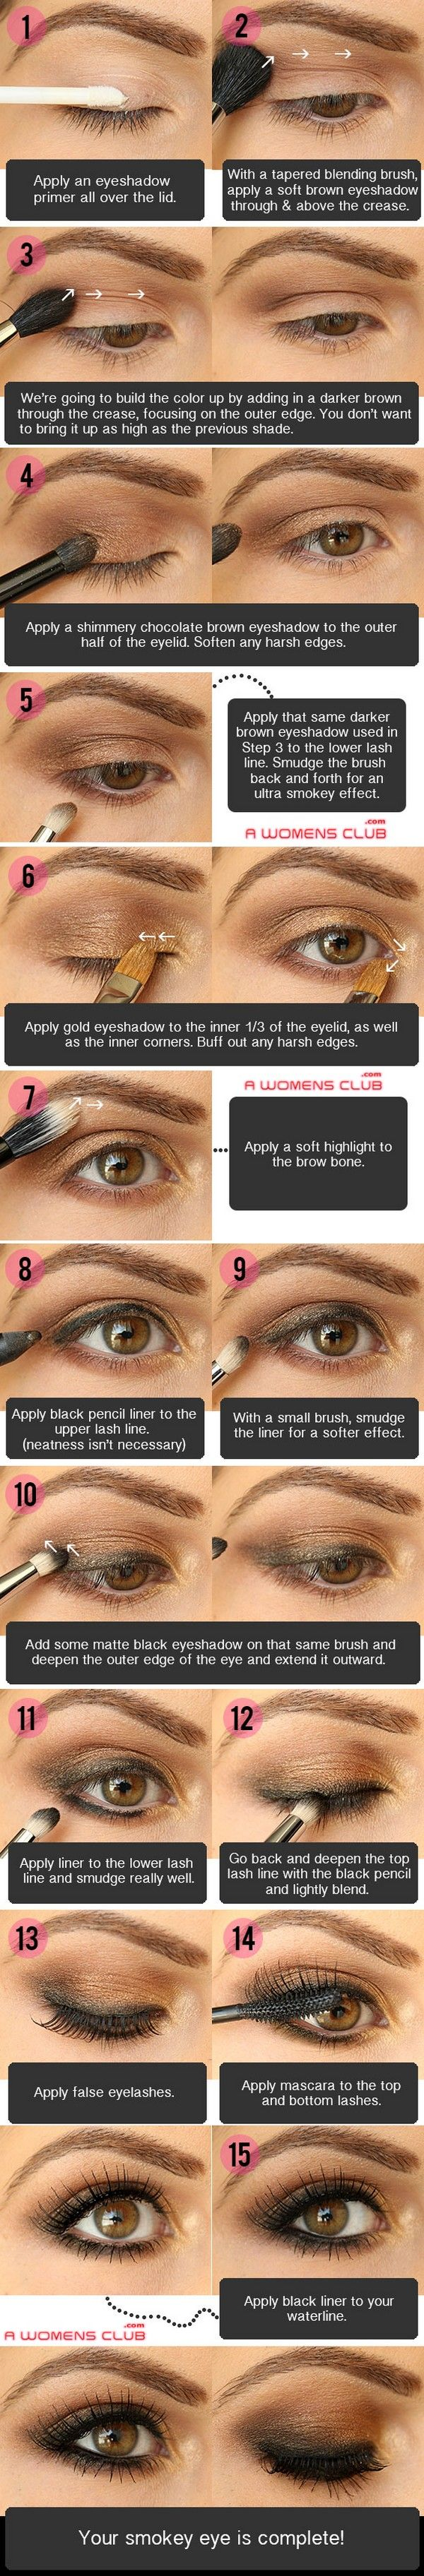 Step by Step Smokey Eye Tutorials - Bronze Smokey - Step by Step Tutorials on How to Apply Different Eyeshadows for Smokey Eyes - Awesome Looks for Brown, Black, and Blue Eyes, Natural Looks, and Looks for All Types of Lashes - thegoddess.com/step-by-step-smokey-eye